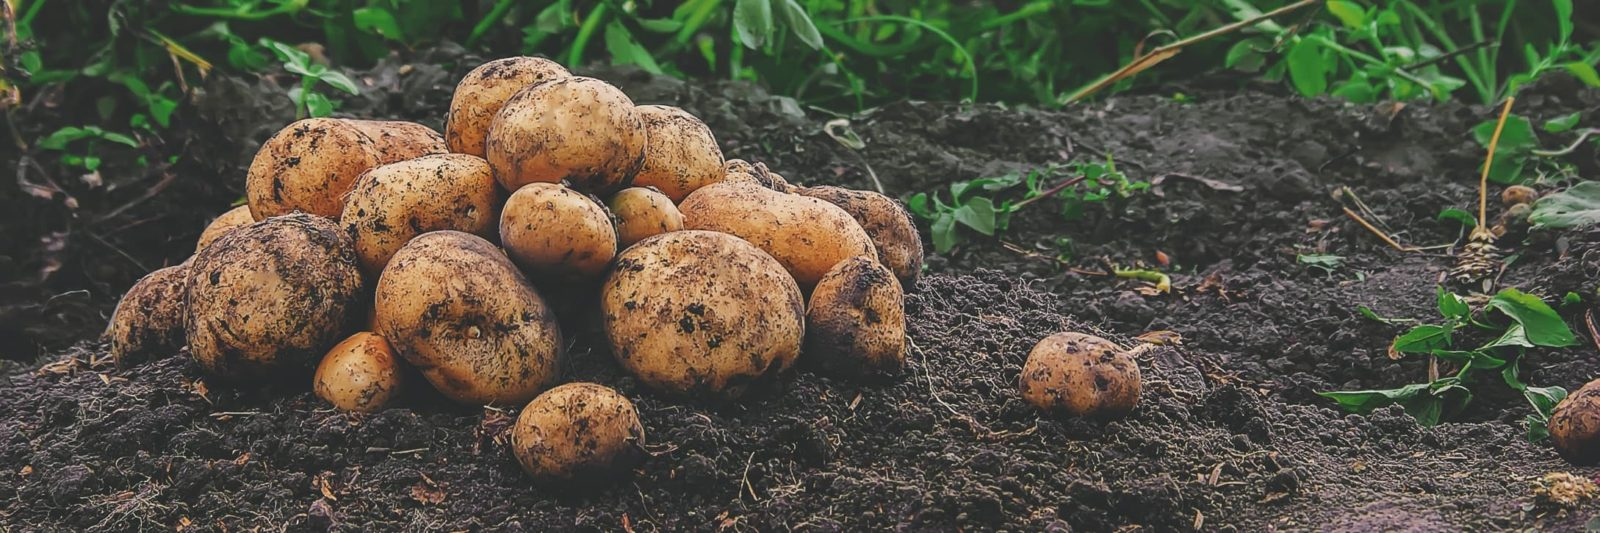 unearthed potatoes laid on soil